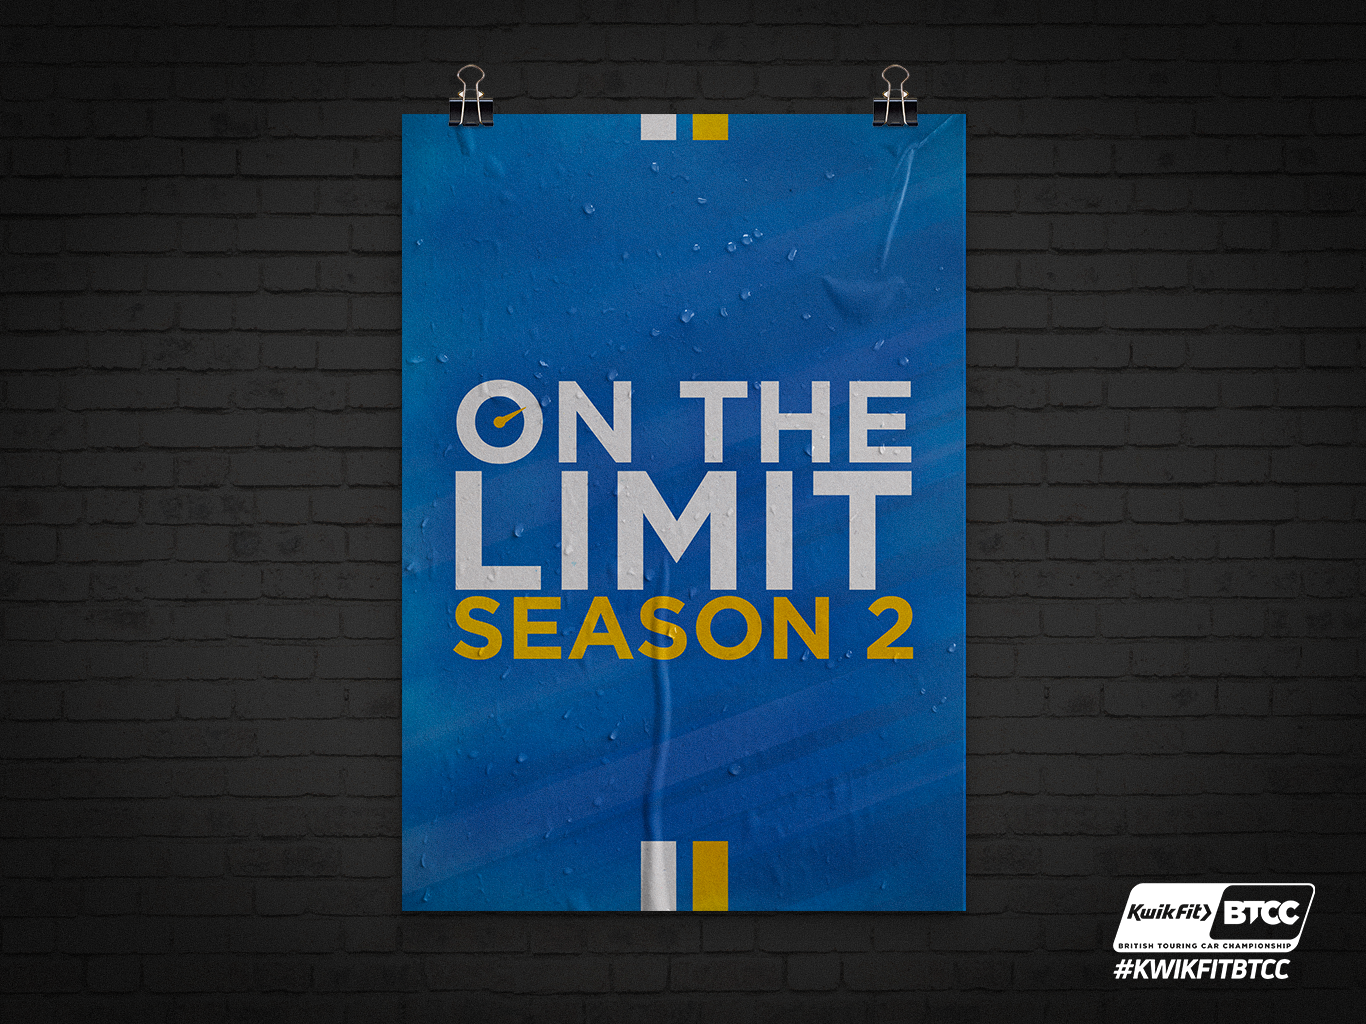 Kwik Fit & Momentum Social announce return of On the Limit